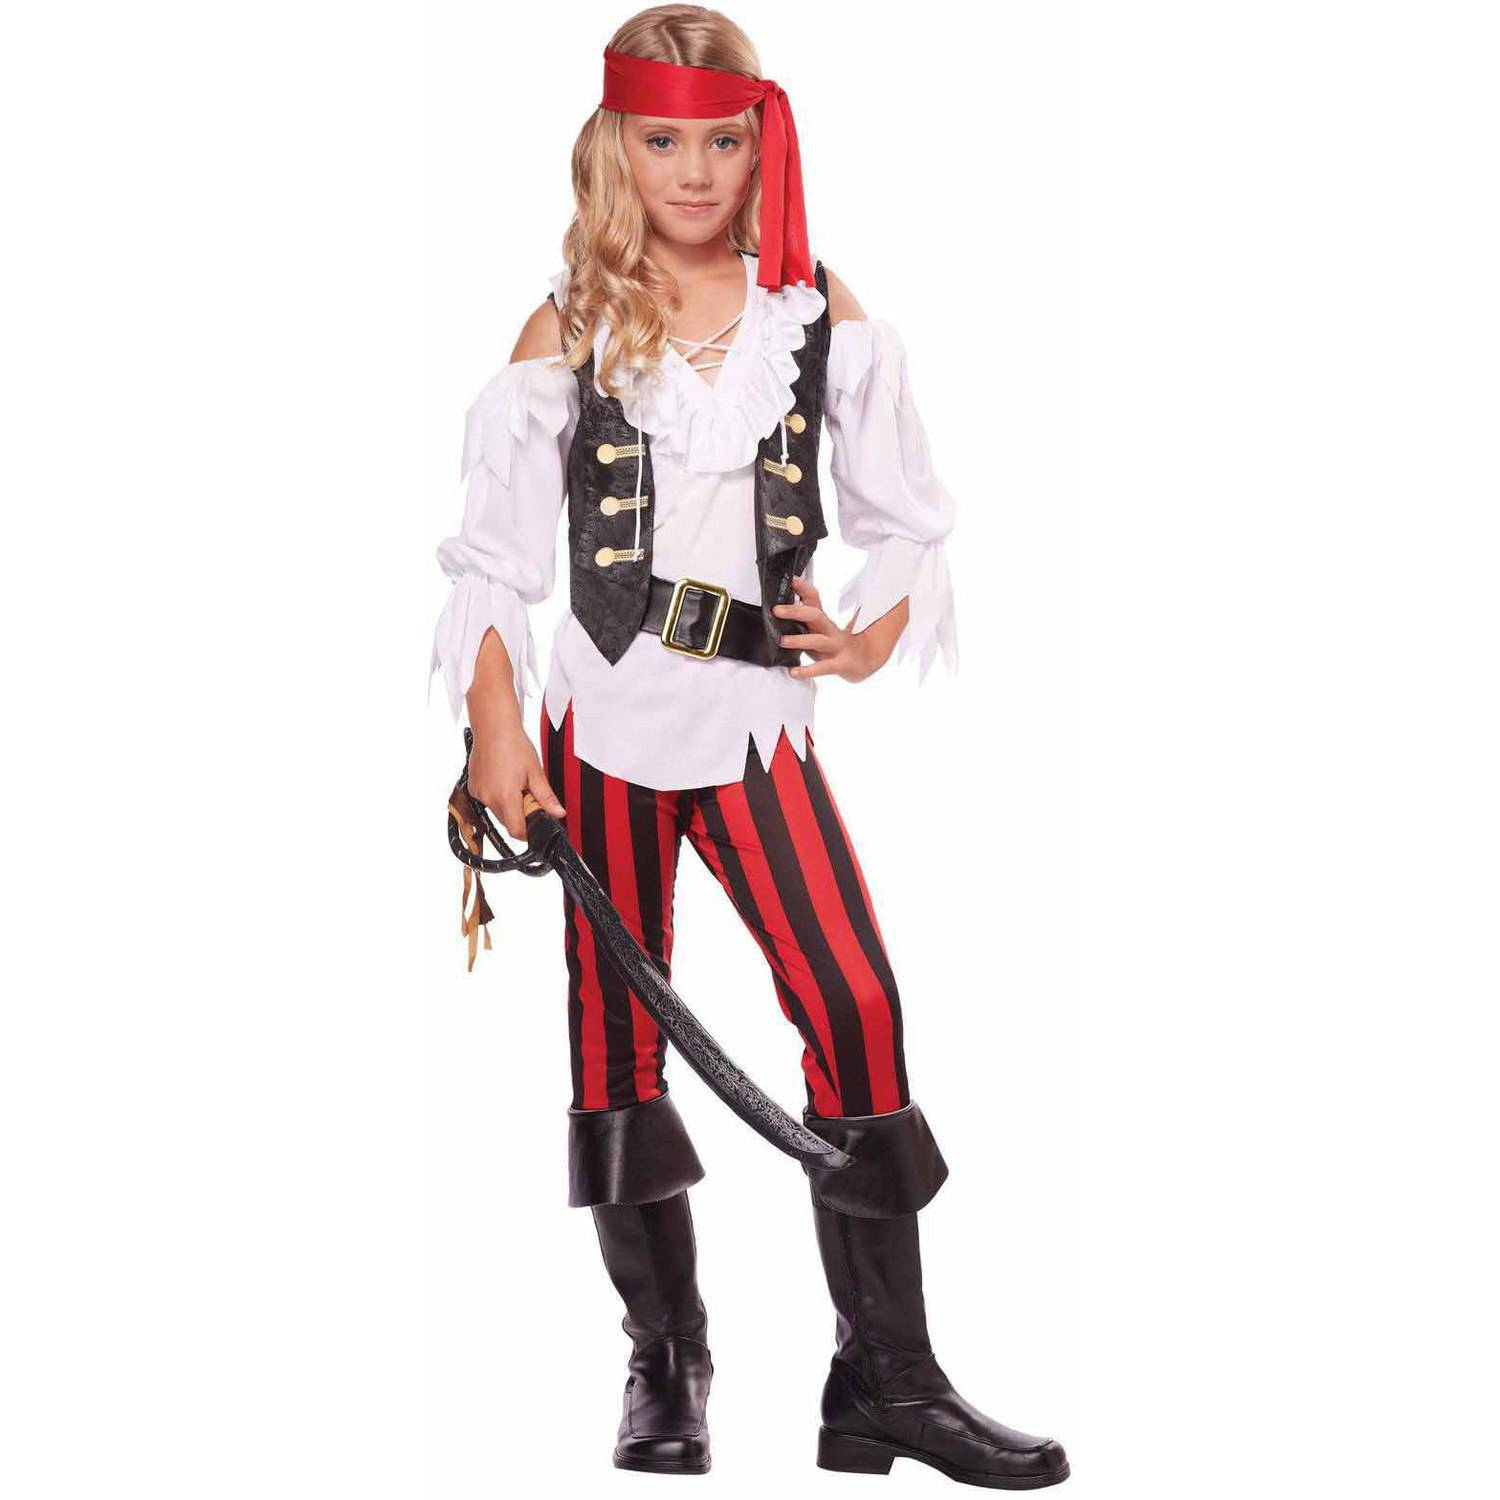 sc 1 st  Walmart & Posh Pirate Girlsu0027 Child Halloween Costume - Walmart.com